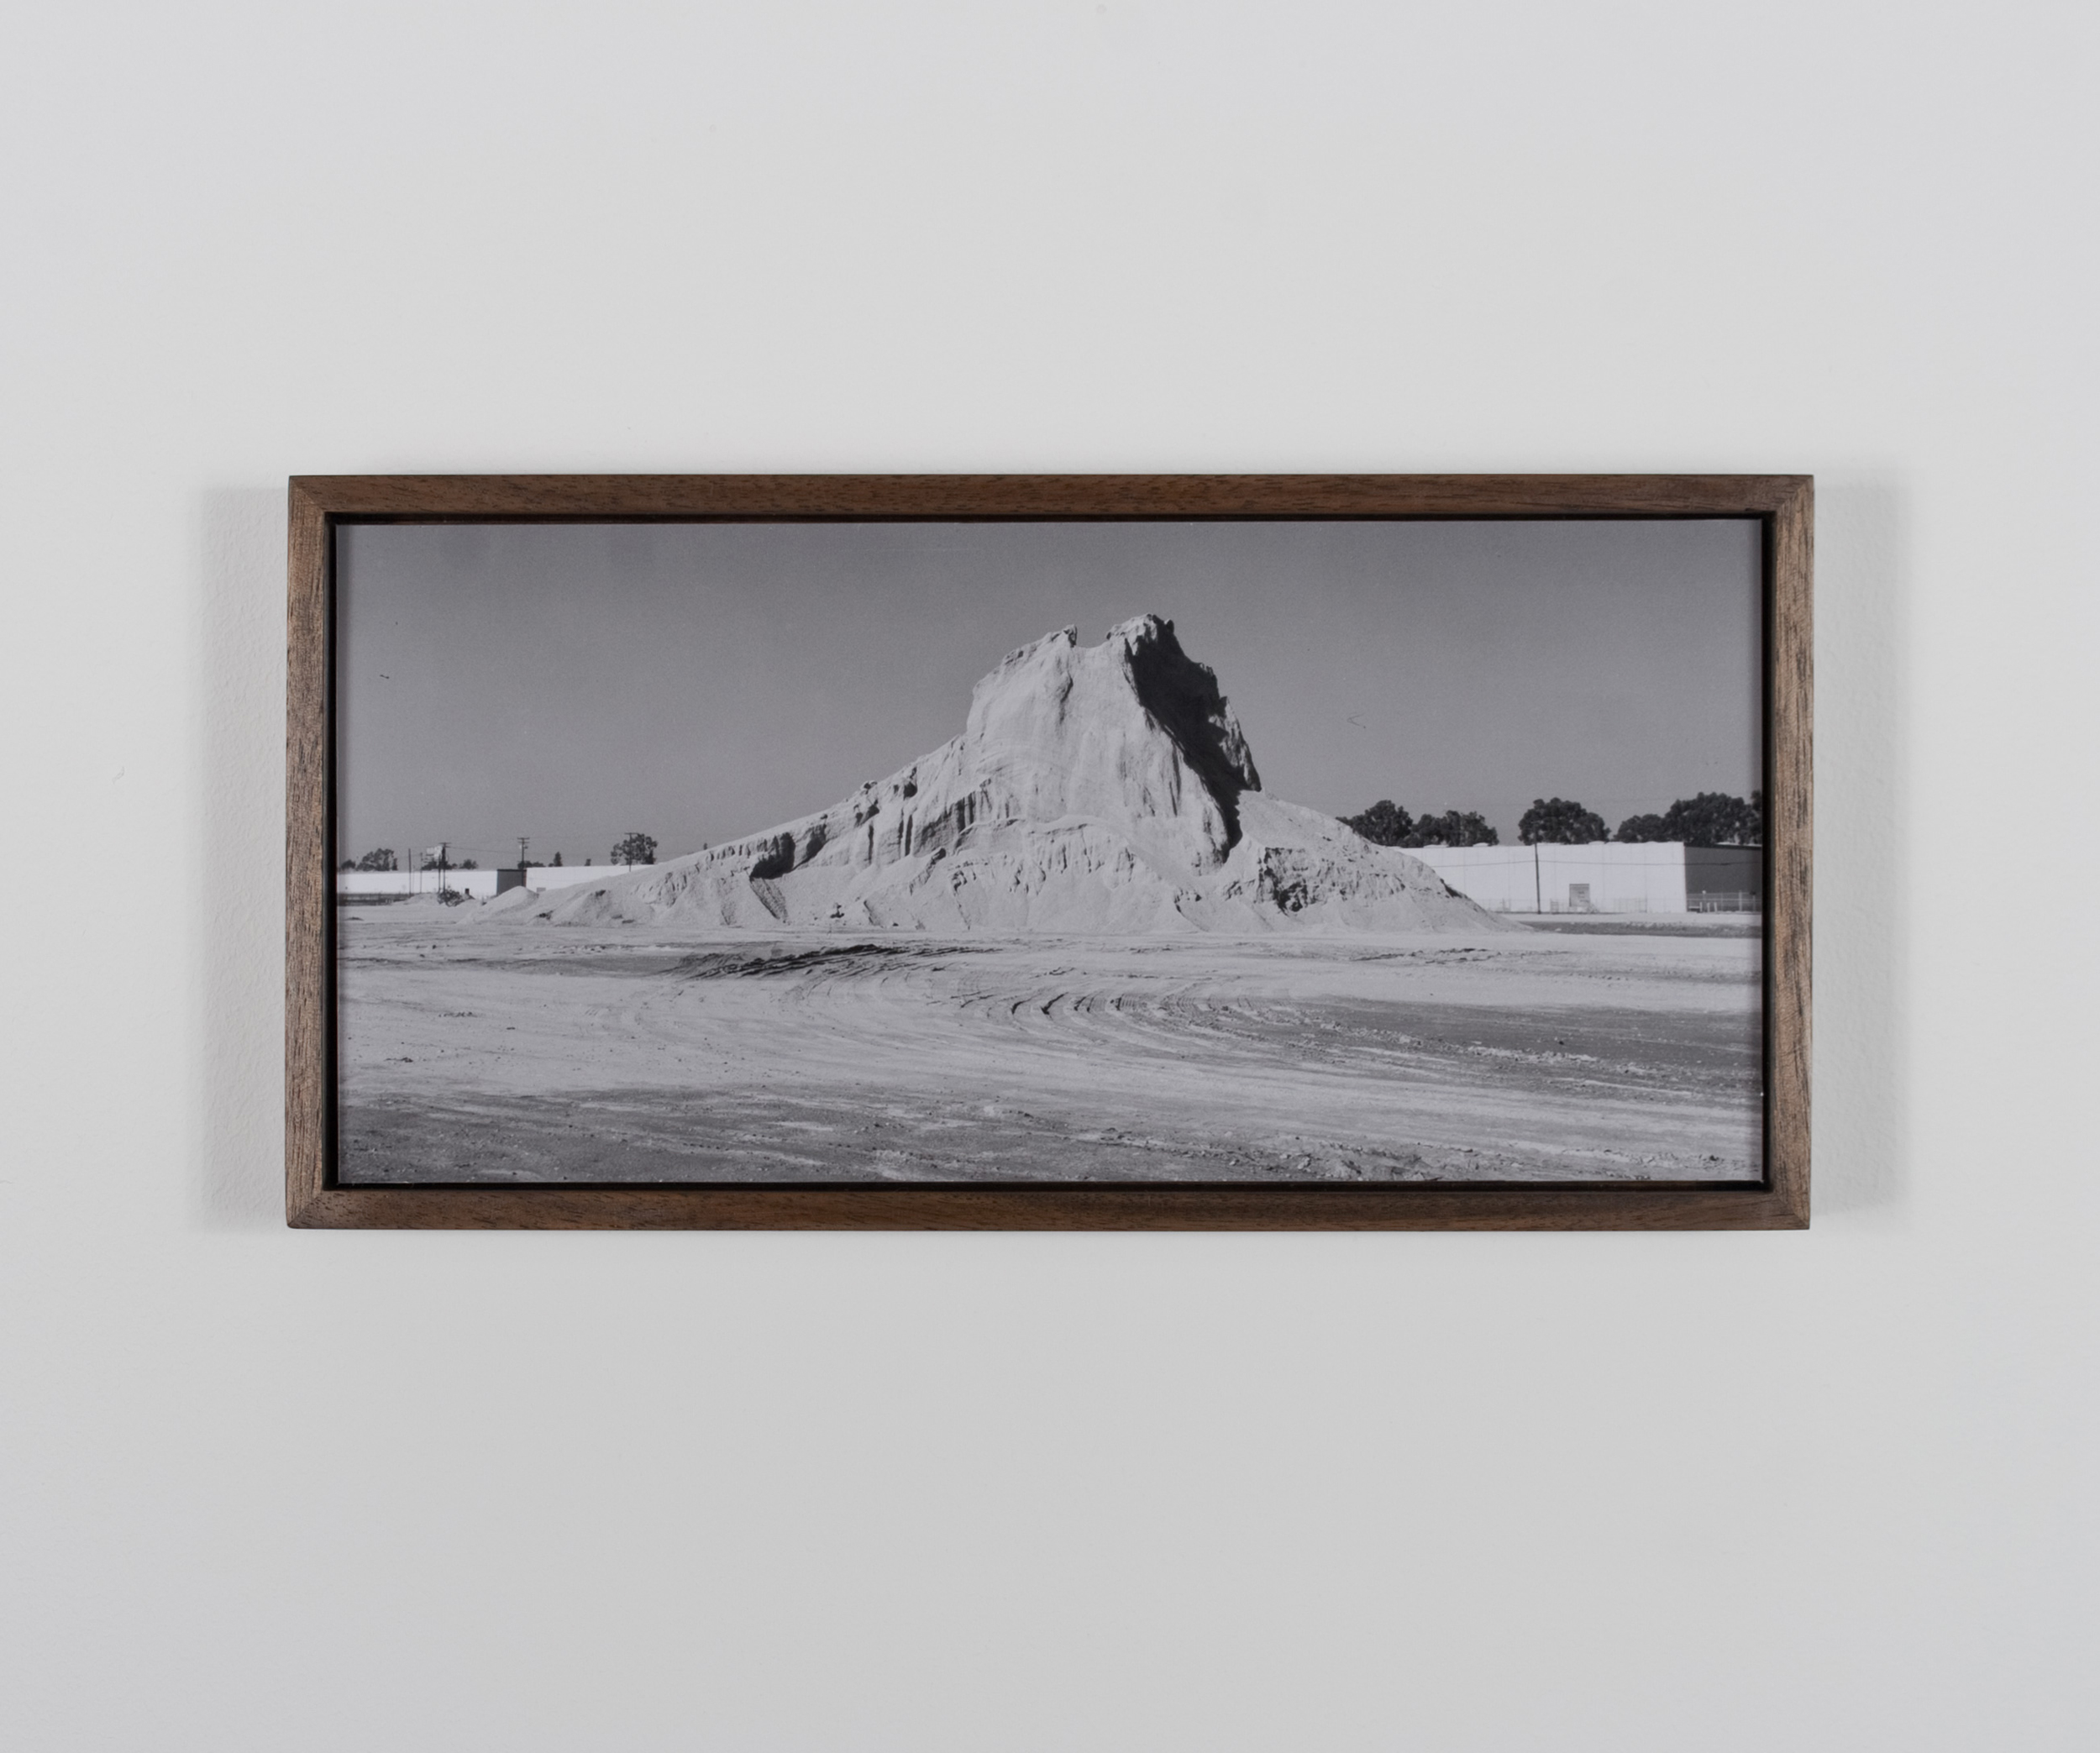 Mount Chaperone (north face) 2009/10 Gelatin-silver print on Dibond, with walnut frame